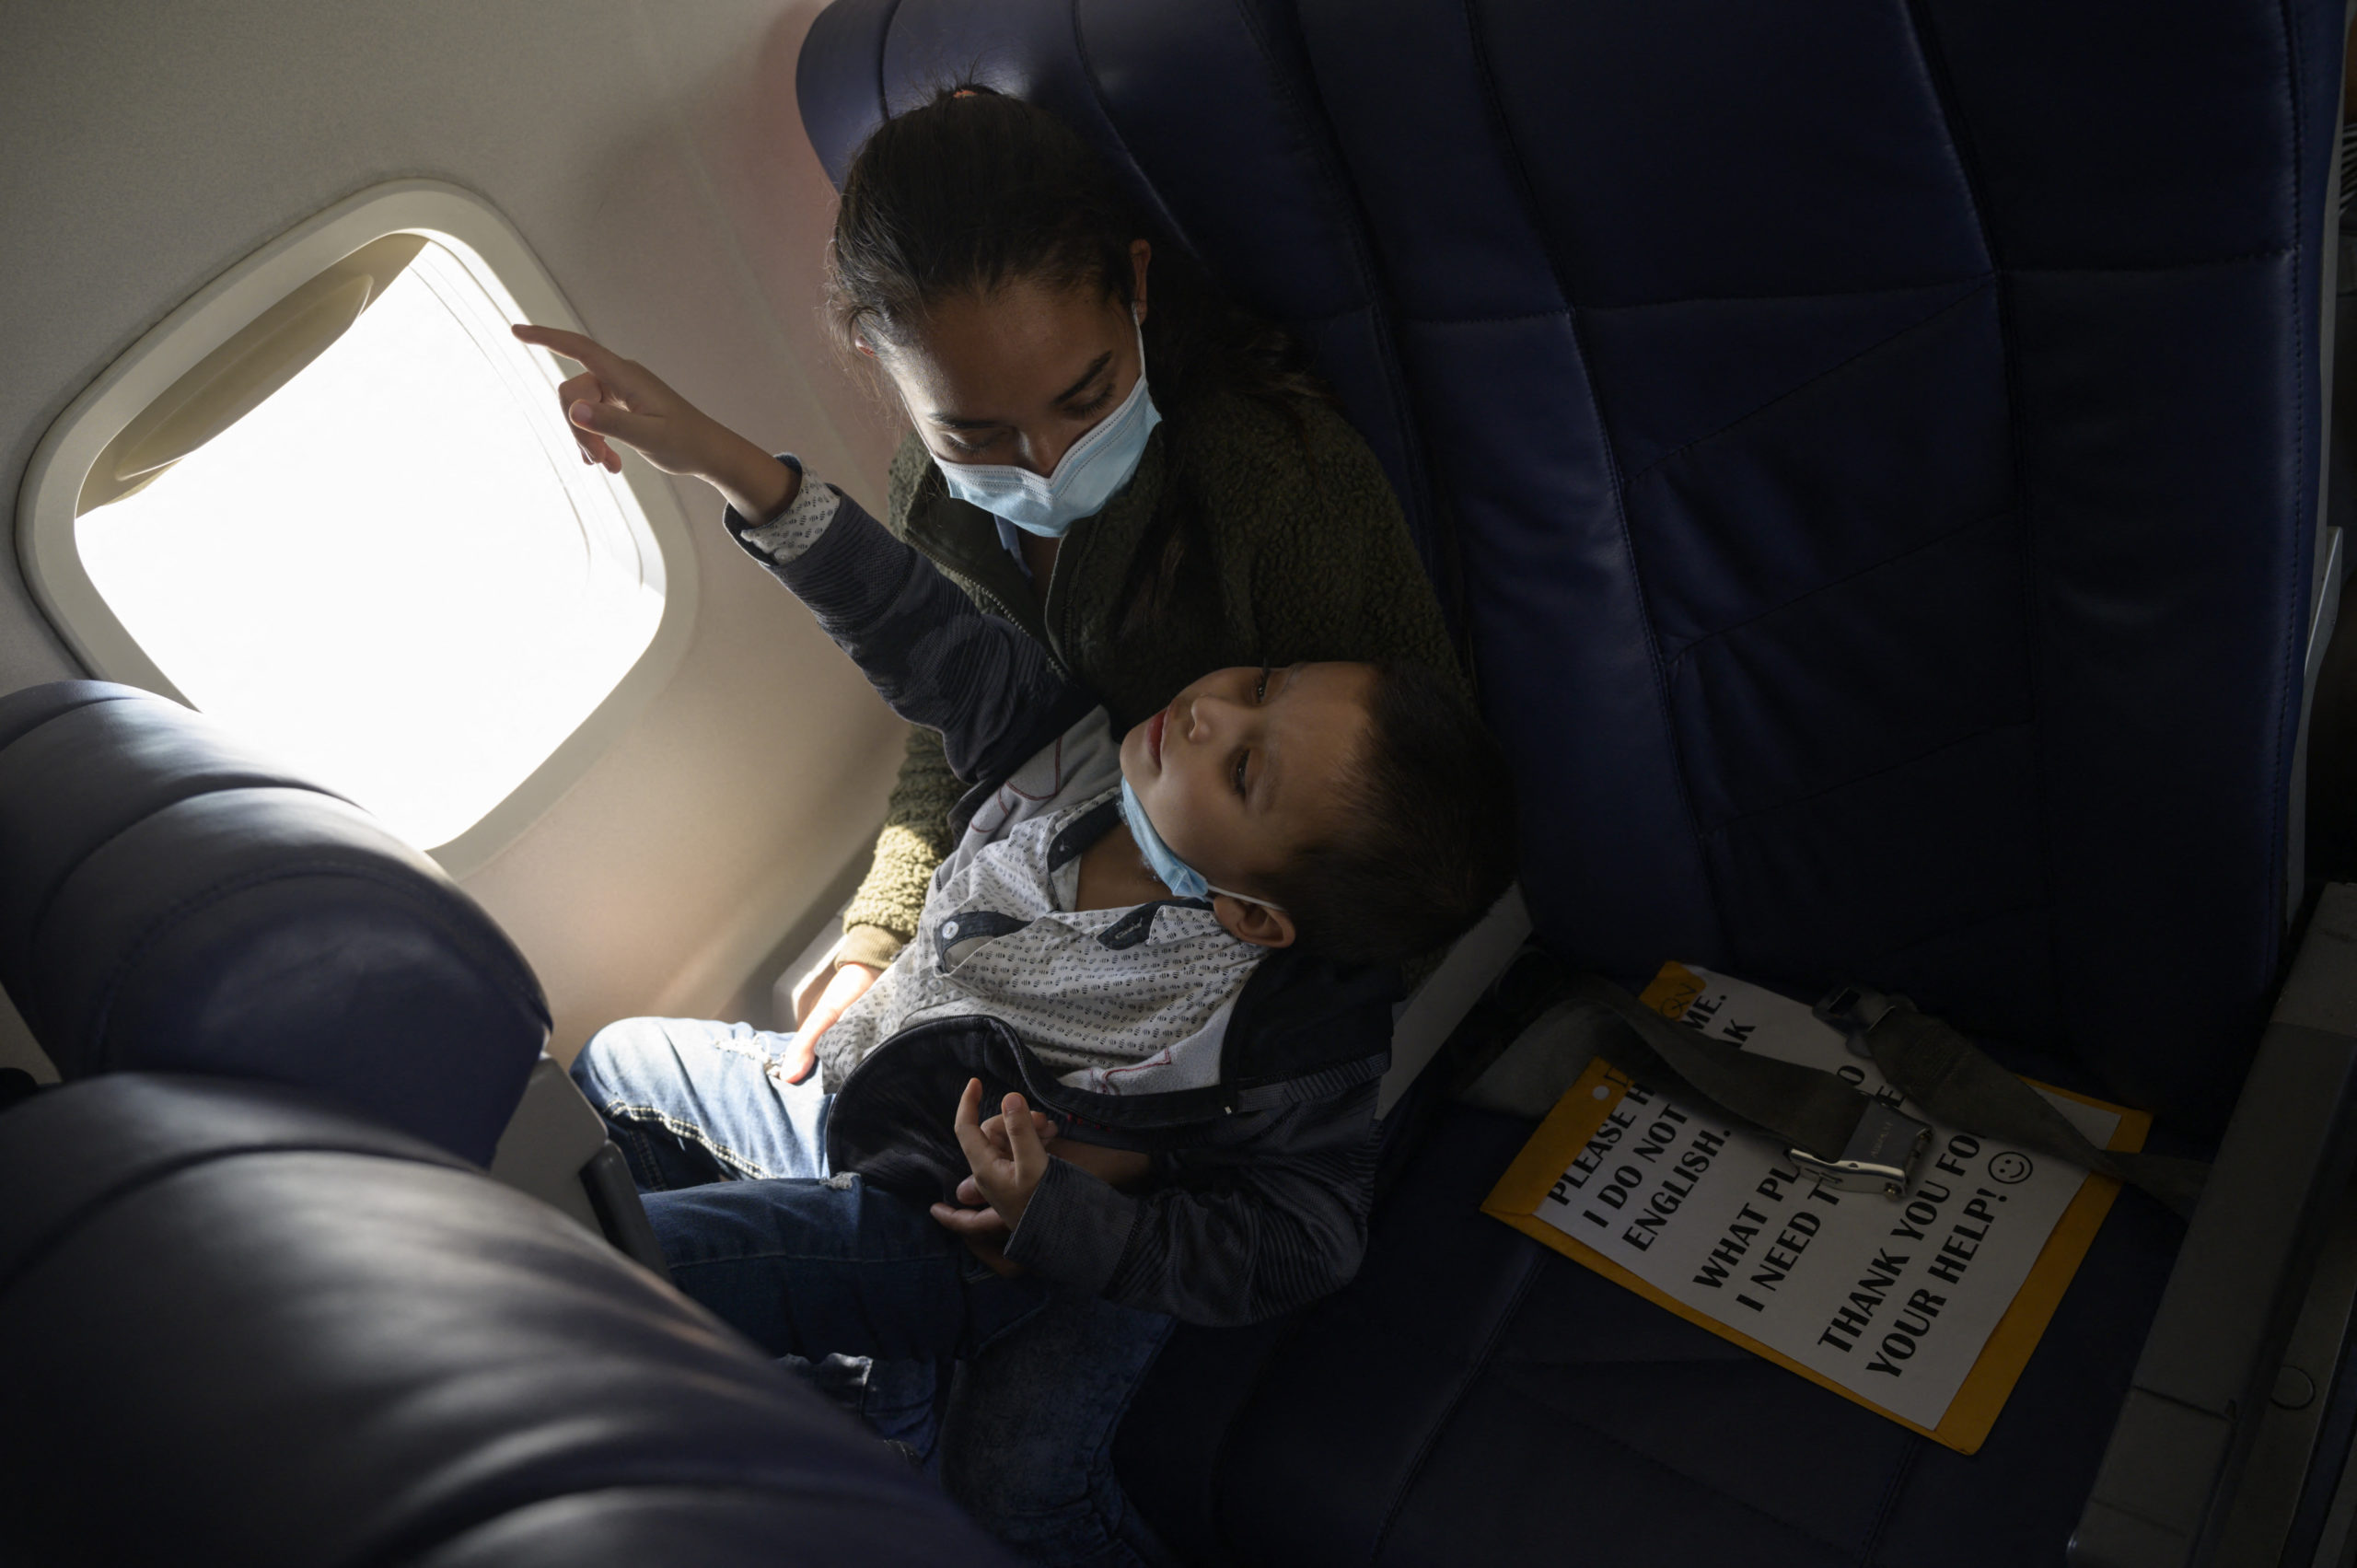 Central American migrants Lidia and her son Isaac sit aboard their flight on March 30, 2021 from McAllen to Houston after being released from a US government holding facility for illegal migrants seeking asylum in McAllen, Texas. (Photo by Ed JONES / AFP) (Photo by ED JONES/AFP via Getty Images)